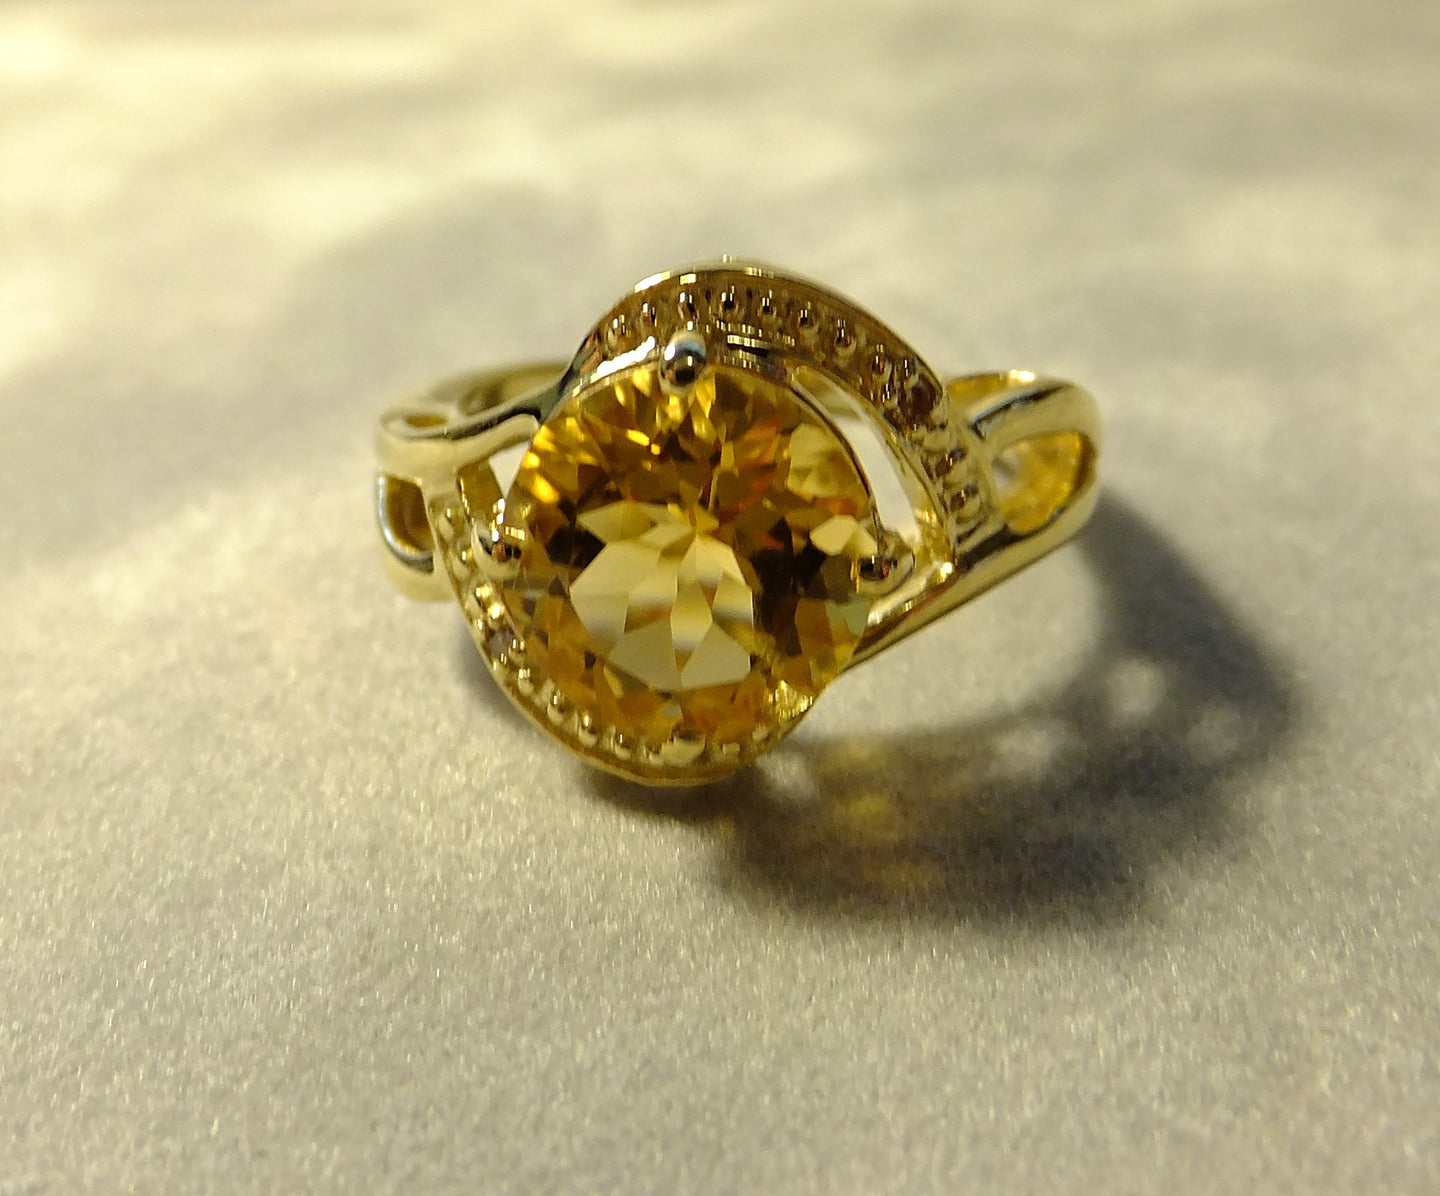 Citrine and diamond gemstone ring with gold